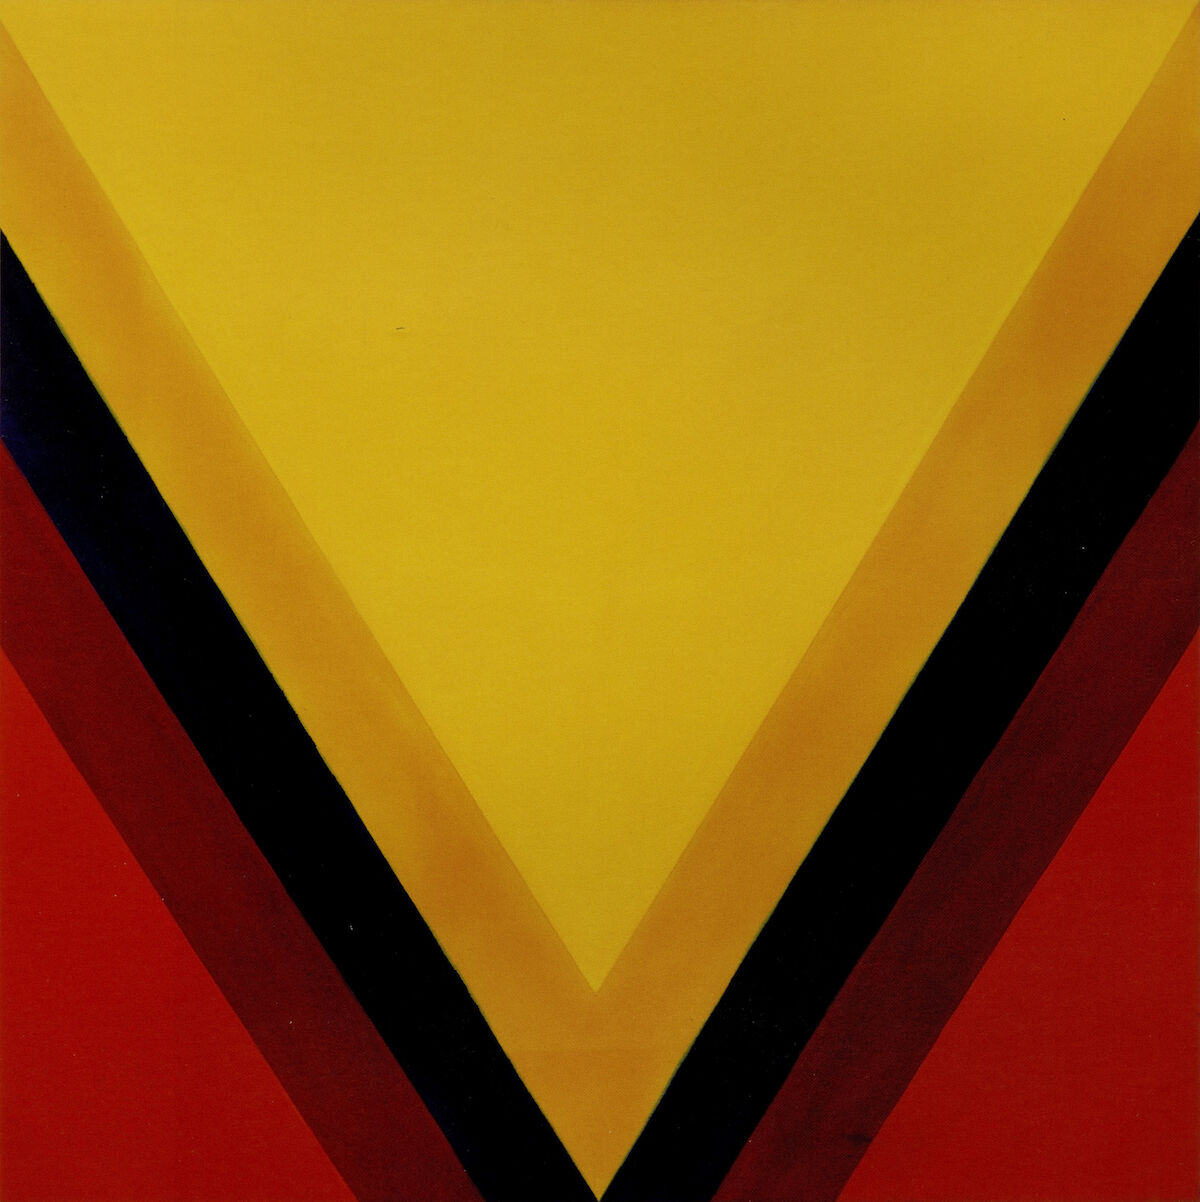 Kenneth Noland, East-West, 1963, magna on canvas. Est. $1 million–$1.5 million. Courtesy Sotheby's.